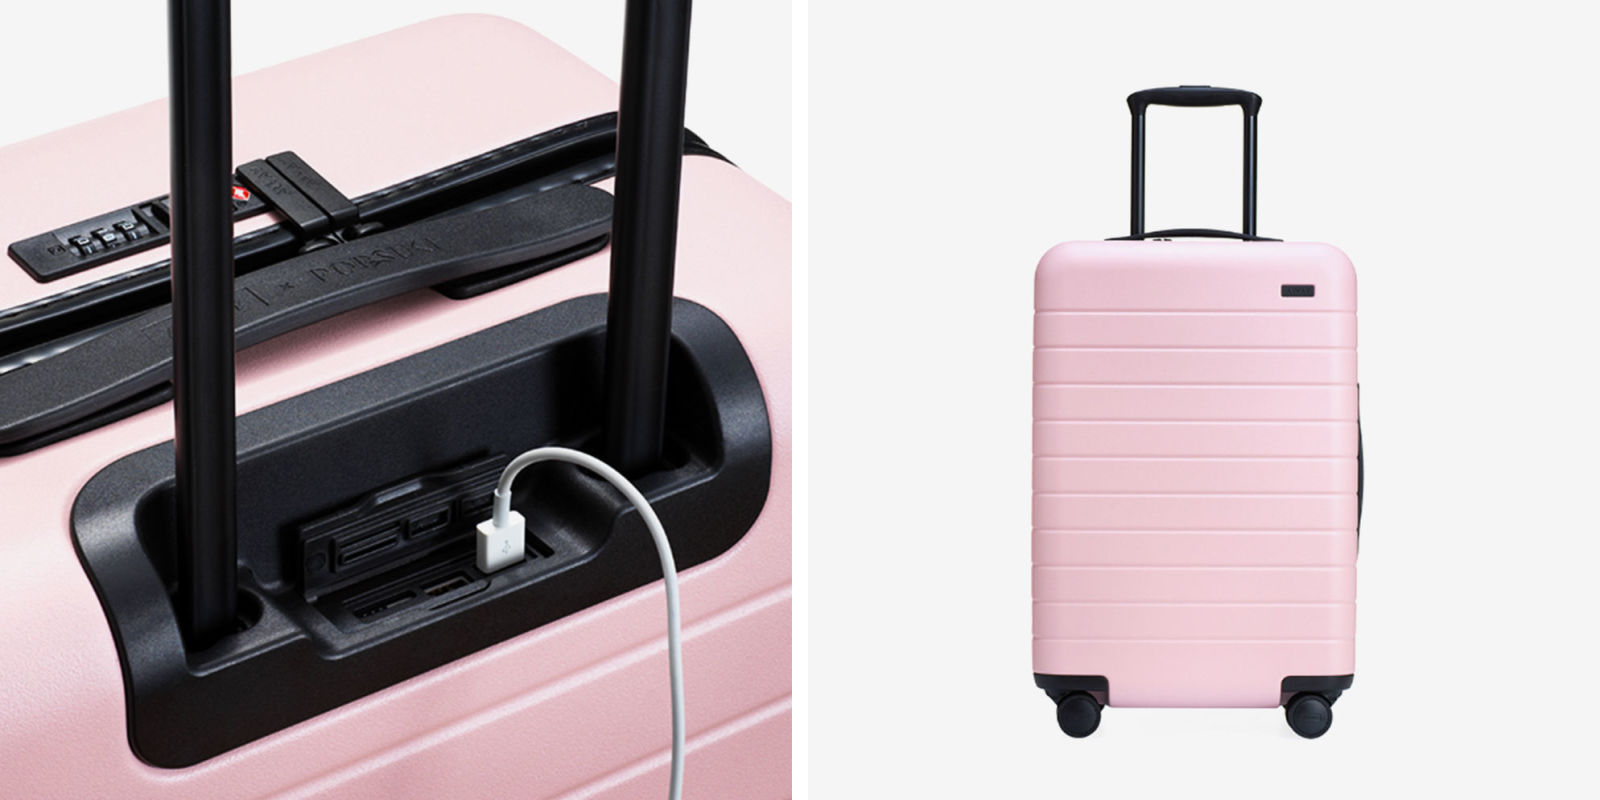 7 Best Smart Luggage Products for 2018 - Reviews for Smart Suitcases With Luggage Trackers